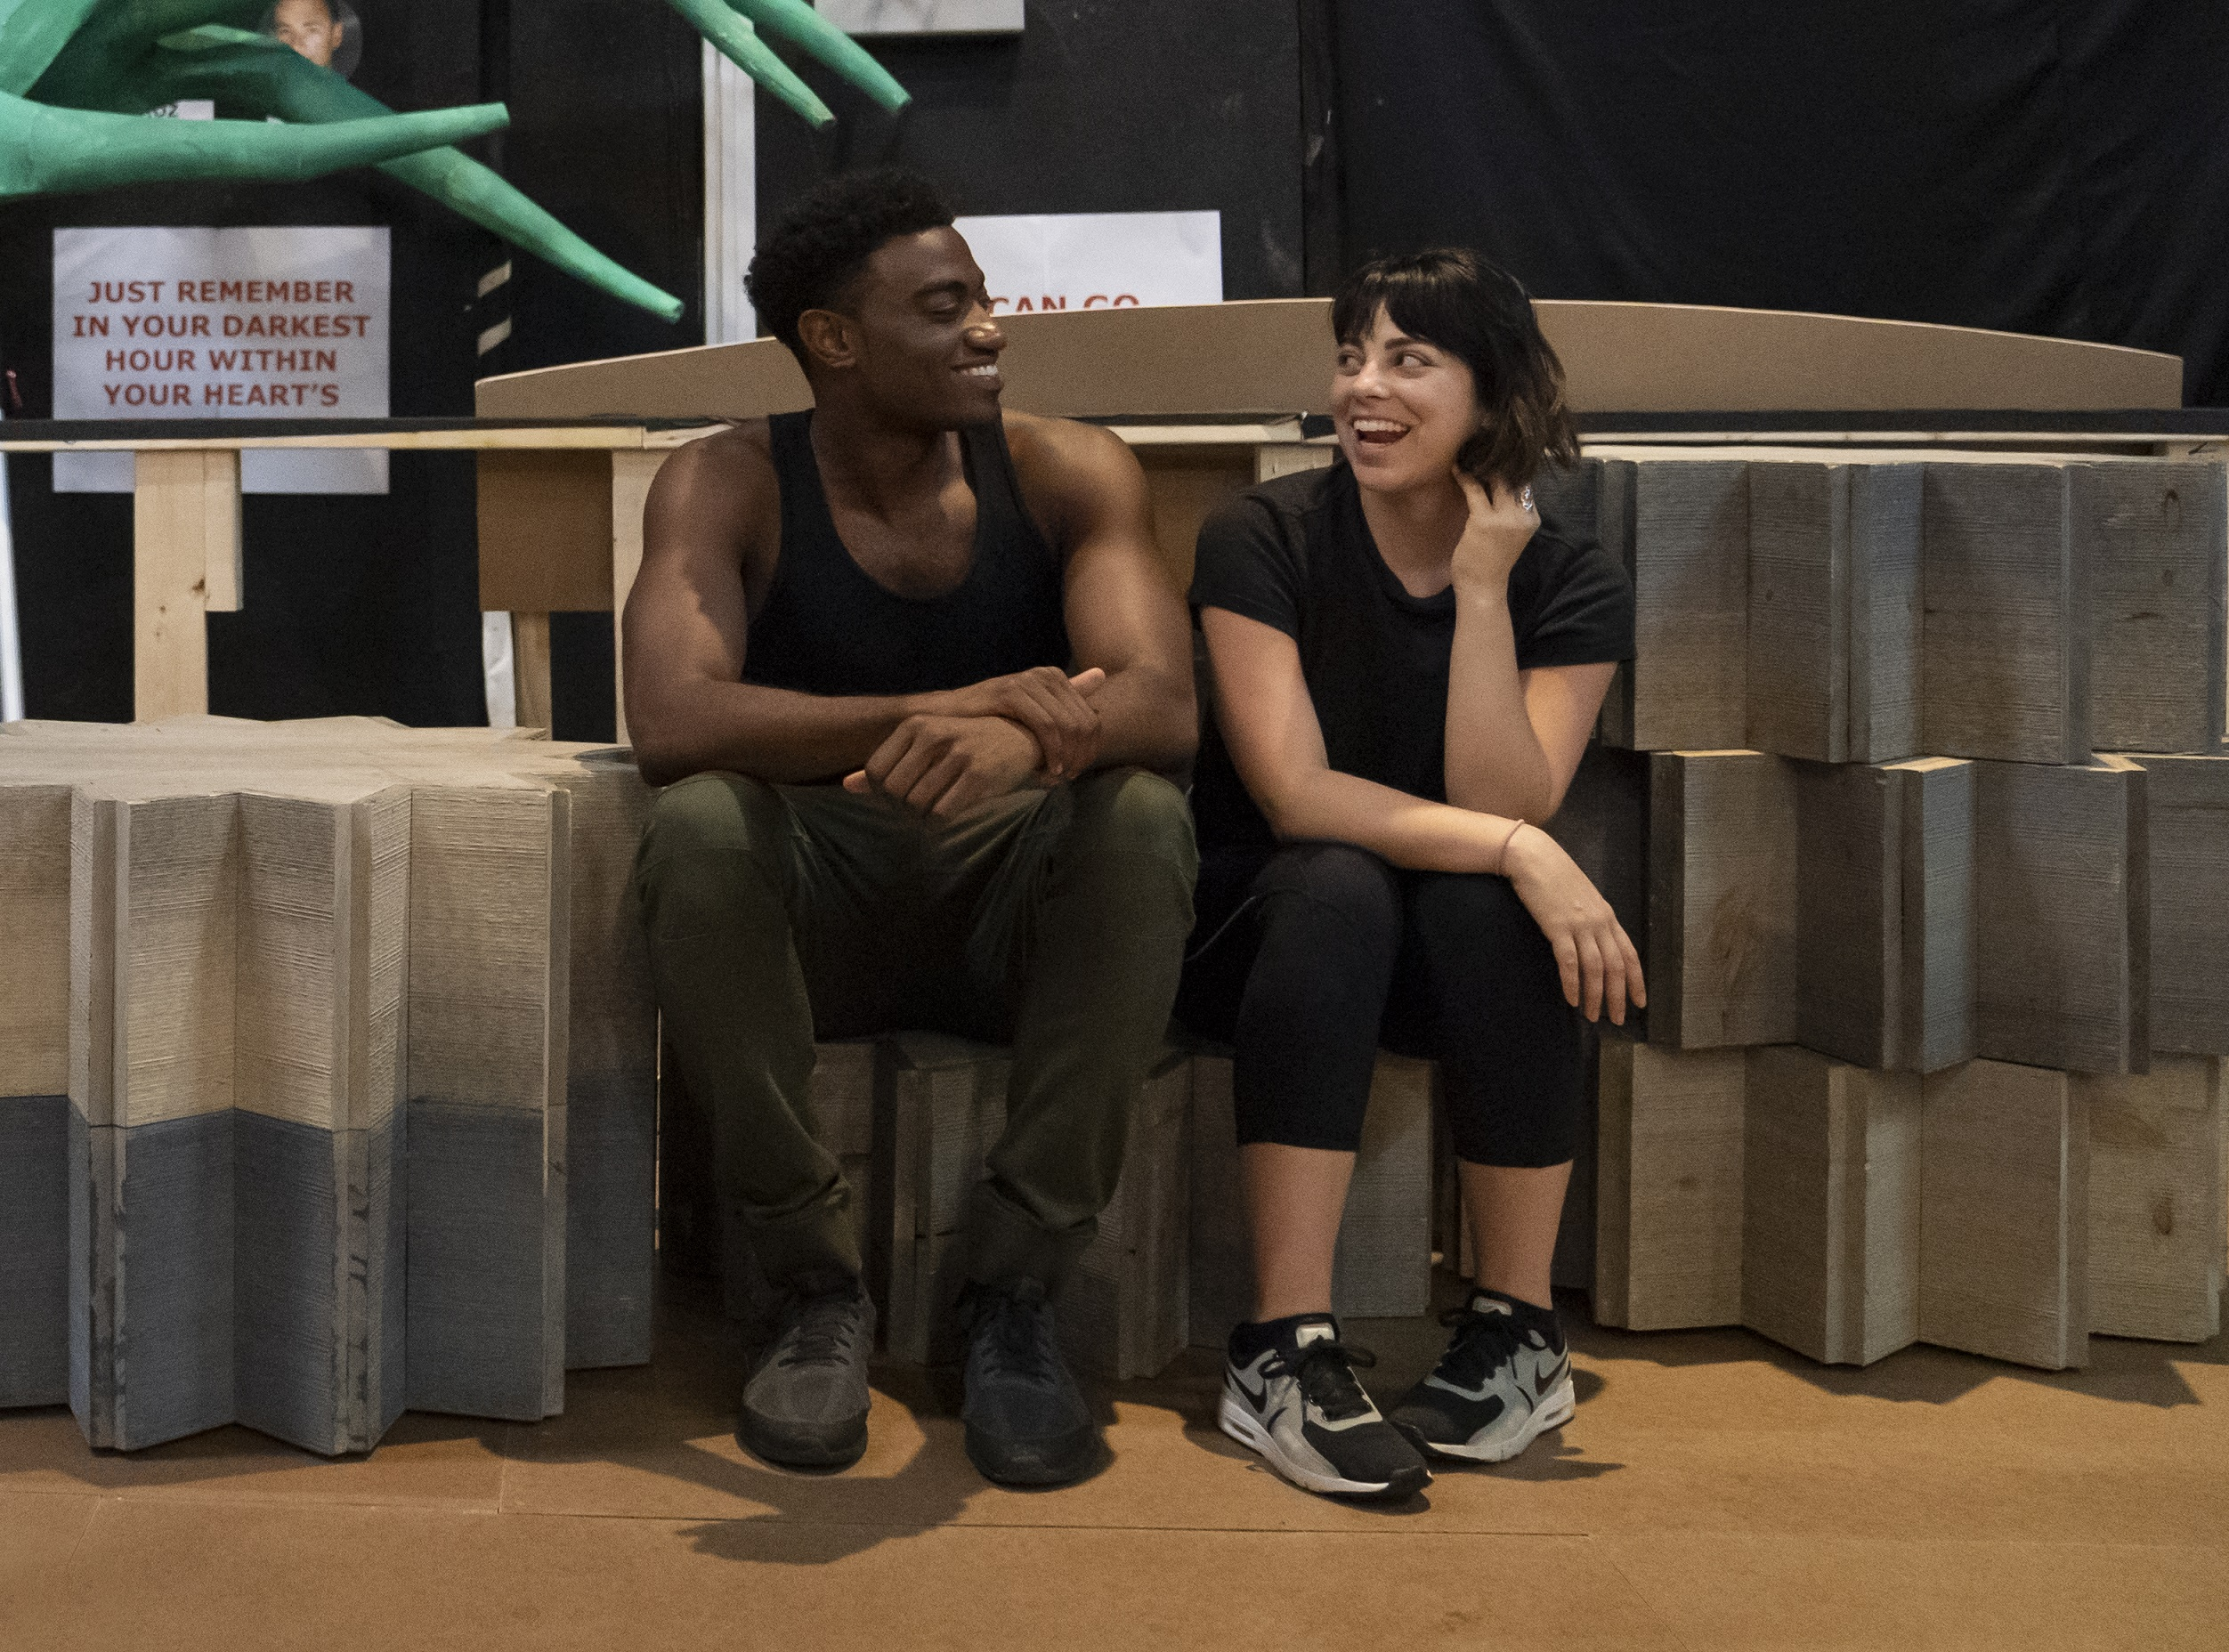 Jelani Alladin and Krysta Rodriguez in rehearsal for Public Works' Hercules, The Public Theater's free production, directed by Lear deBessonet, running at The Delacorte Theater in Central Park starting August 31. Photo credit: Joan Marcus.